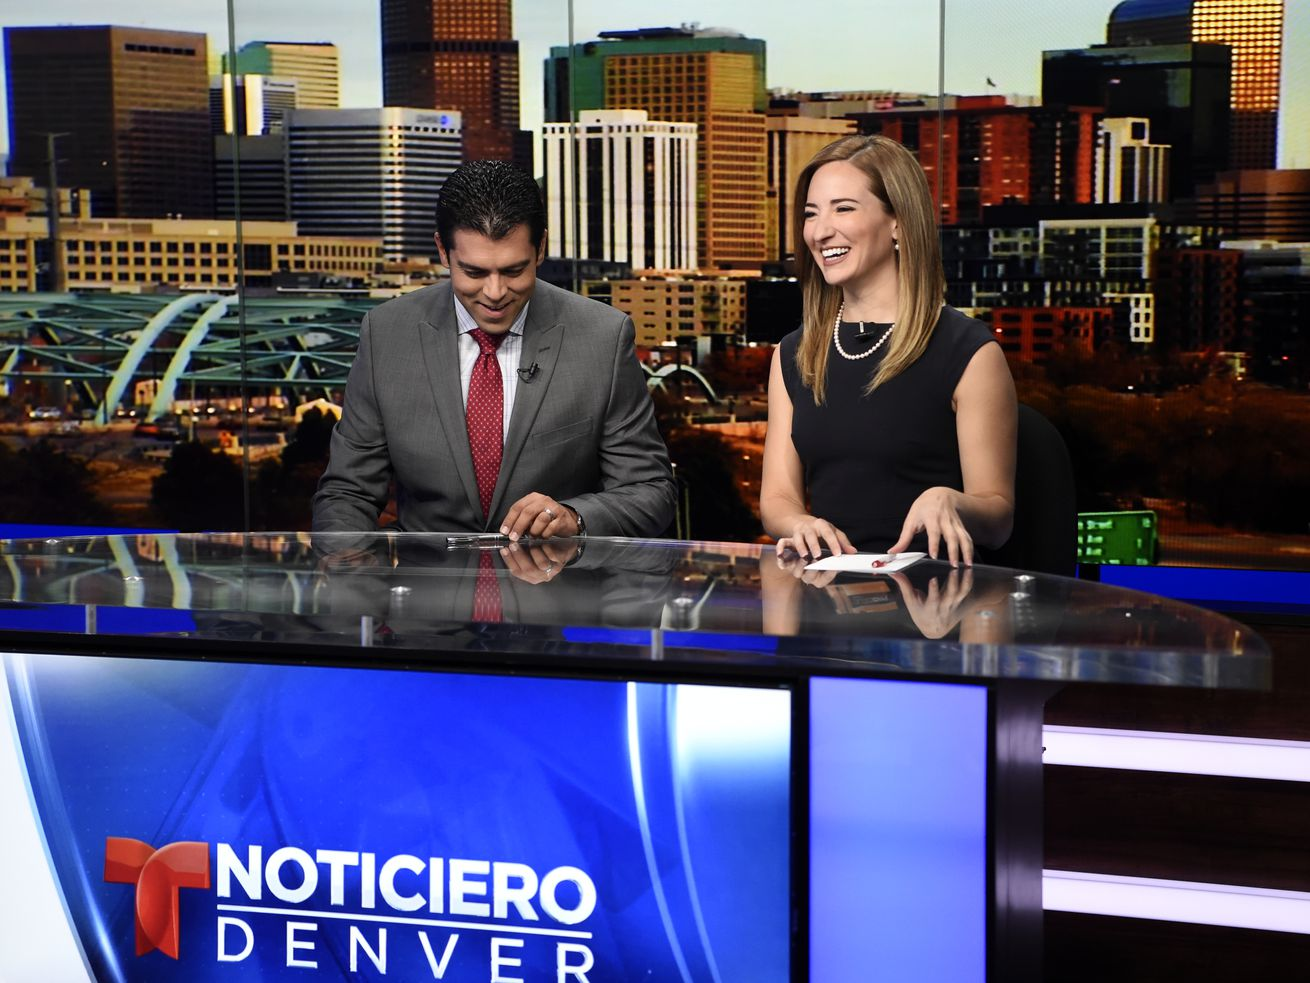 Anchors prepare for an afternoon newscast at Telemundo Denver on Monday, March 28, 2016.